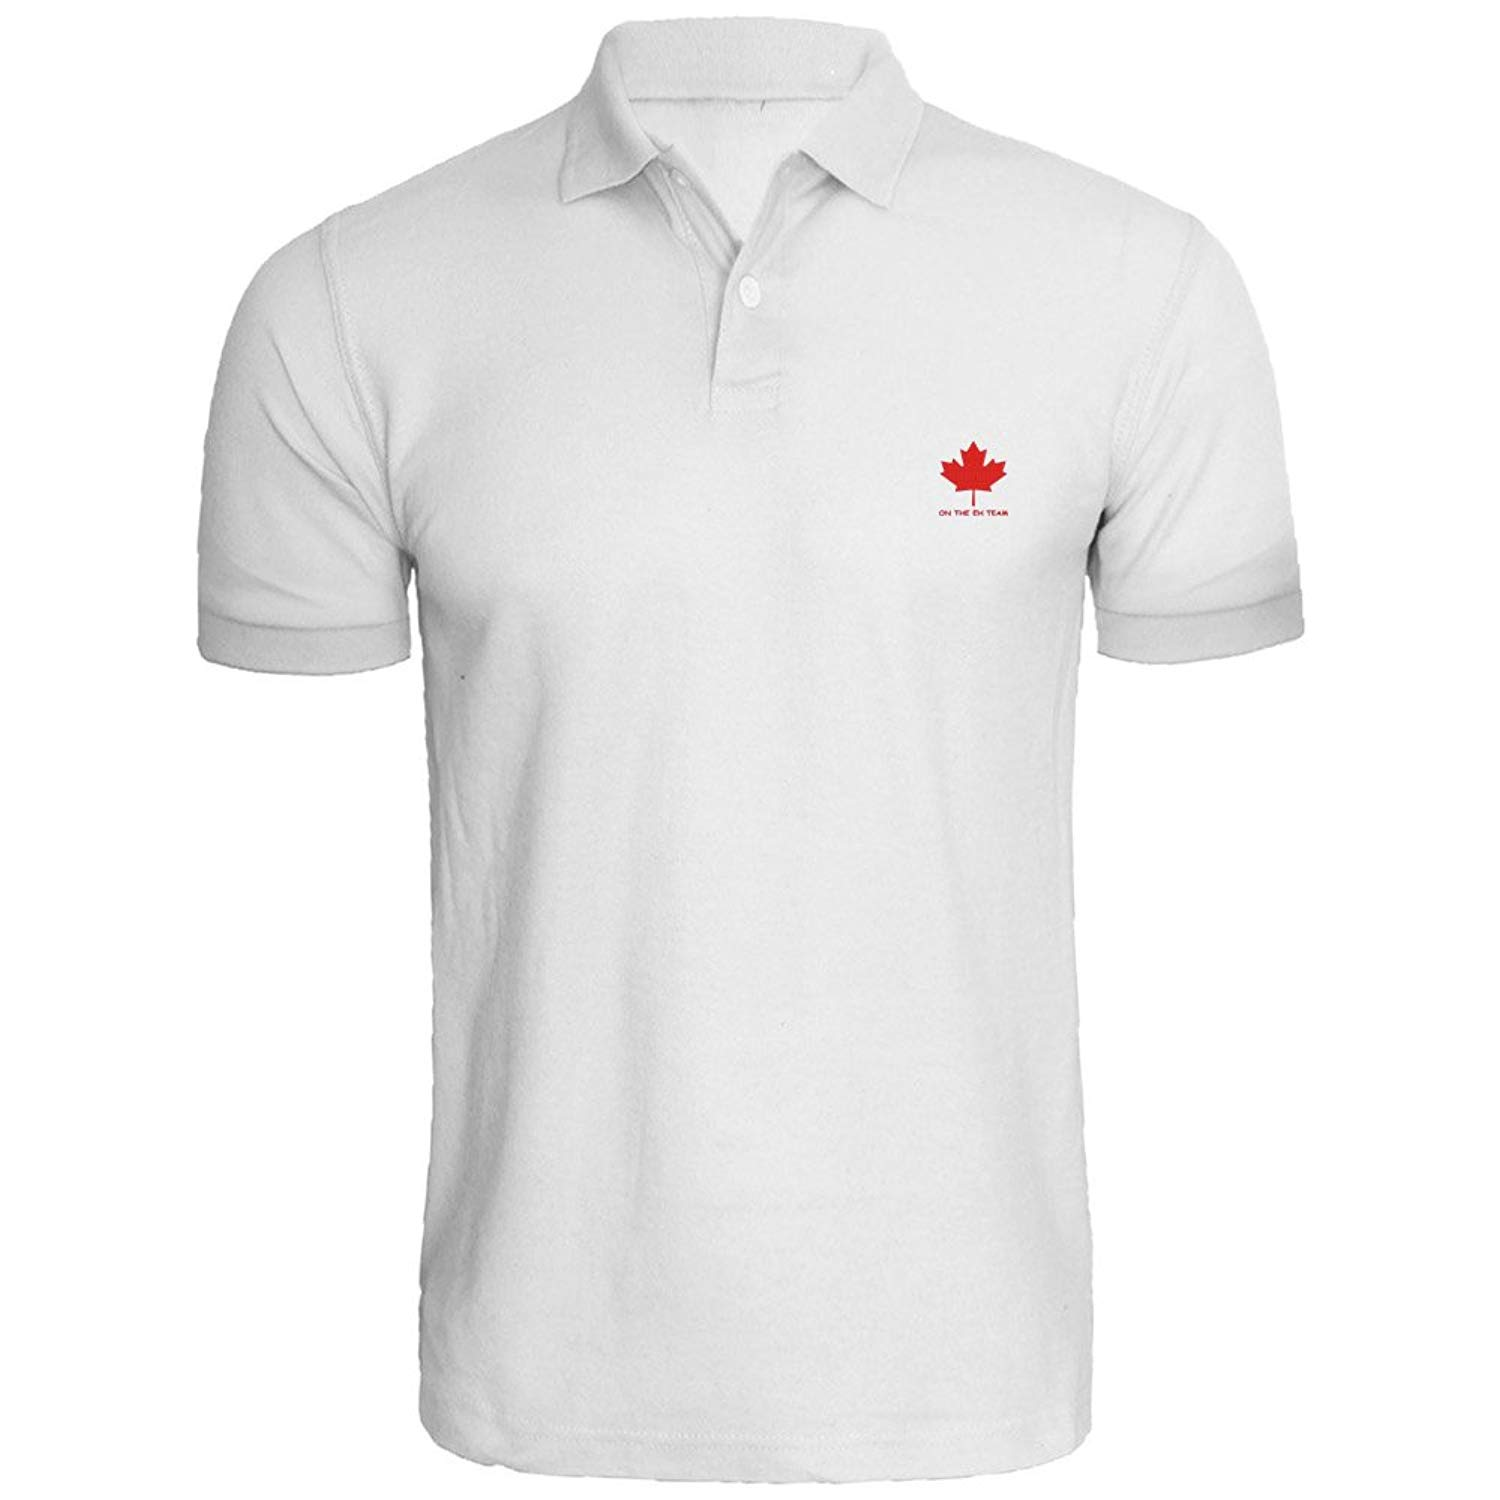 Cheap Embroidered Polo Shirts Canada Find Embroidered Polo Shirts